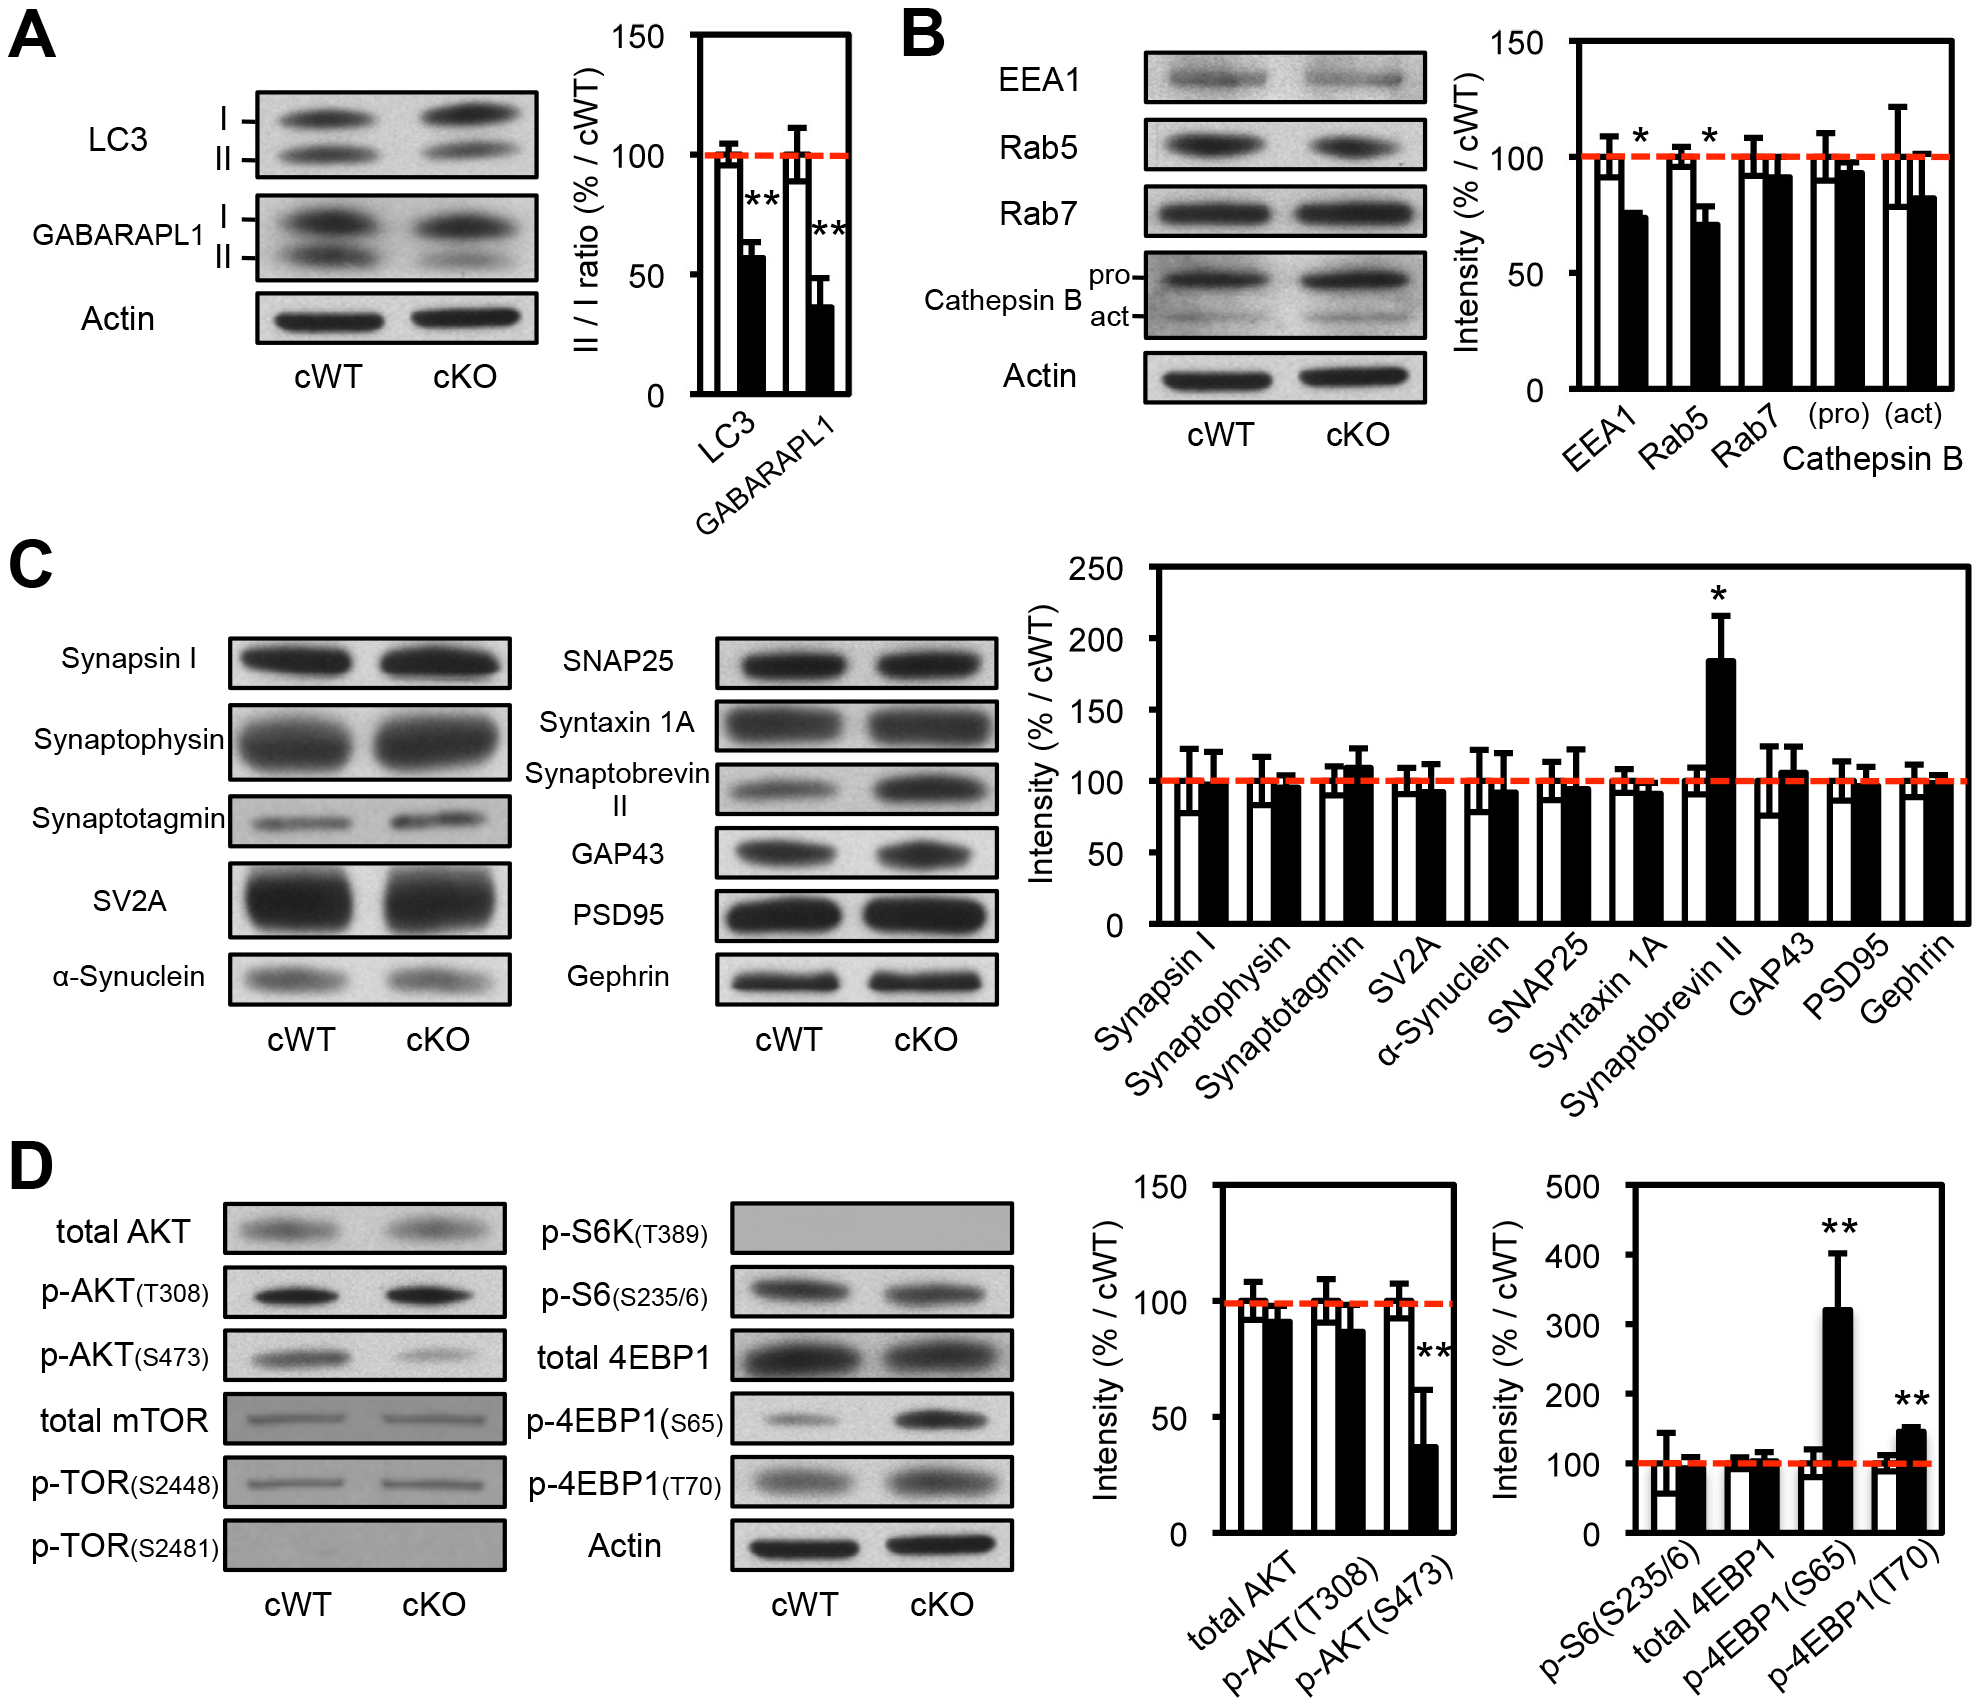 Biochemical analyses of the protein extracts from the striatal synaptosomes of <i>Atg7</i> cKO mice.